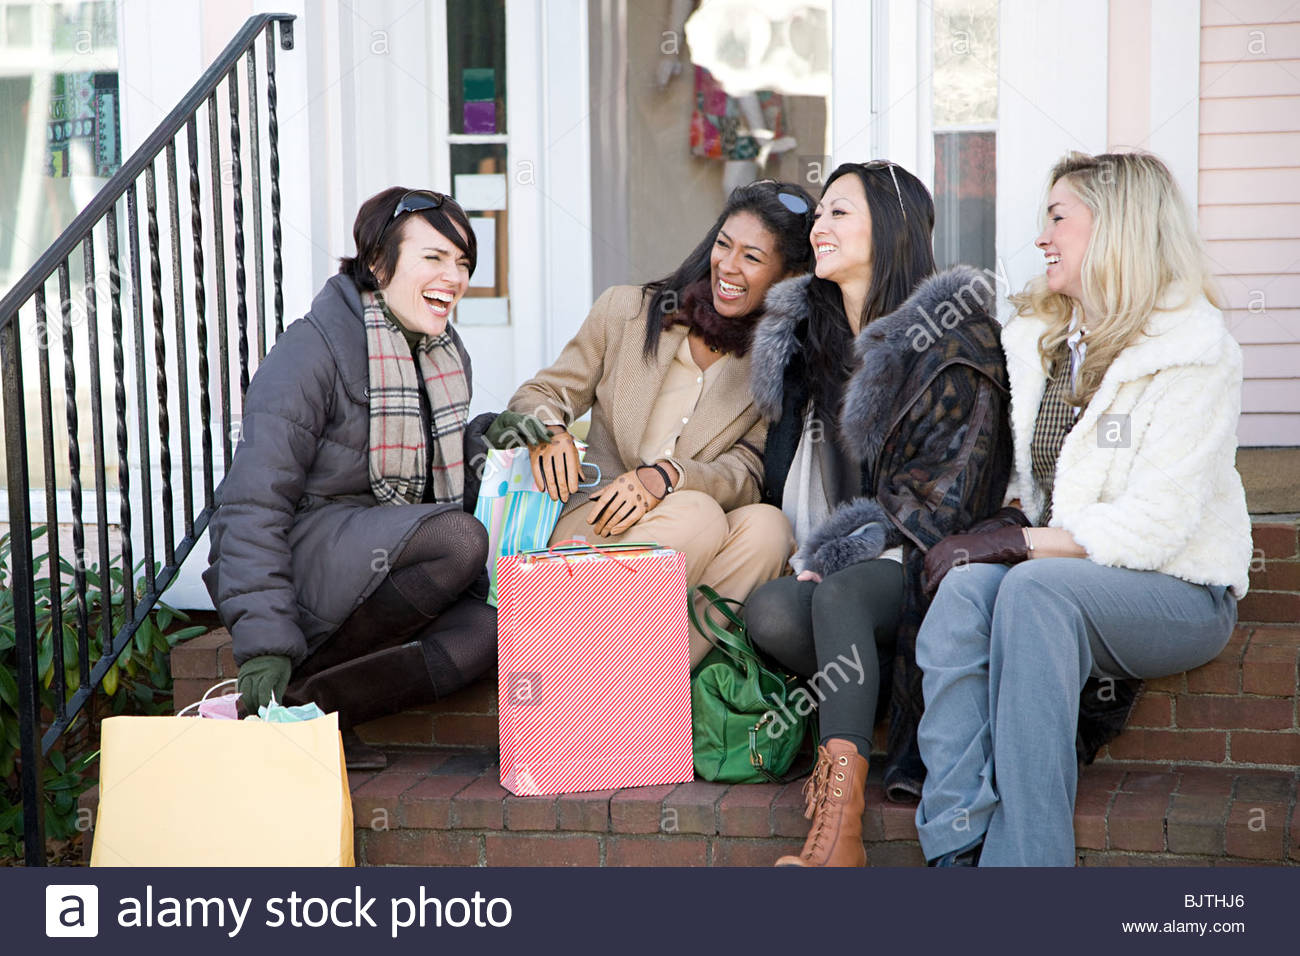 Friends with shopping bags - Stock Image